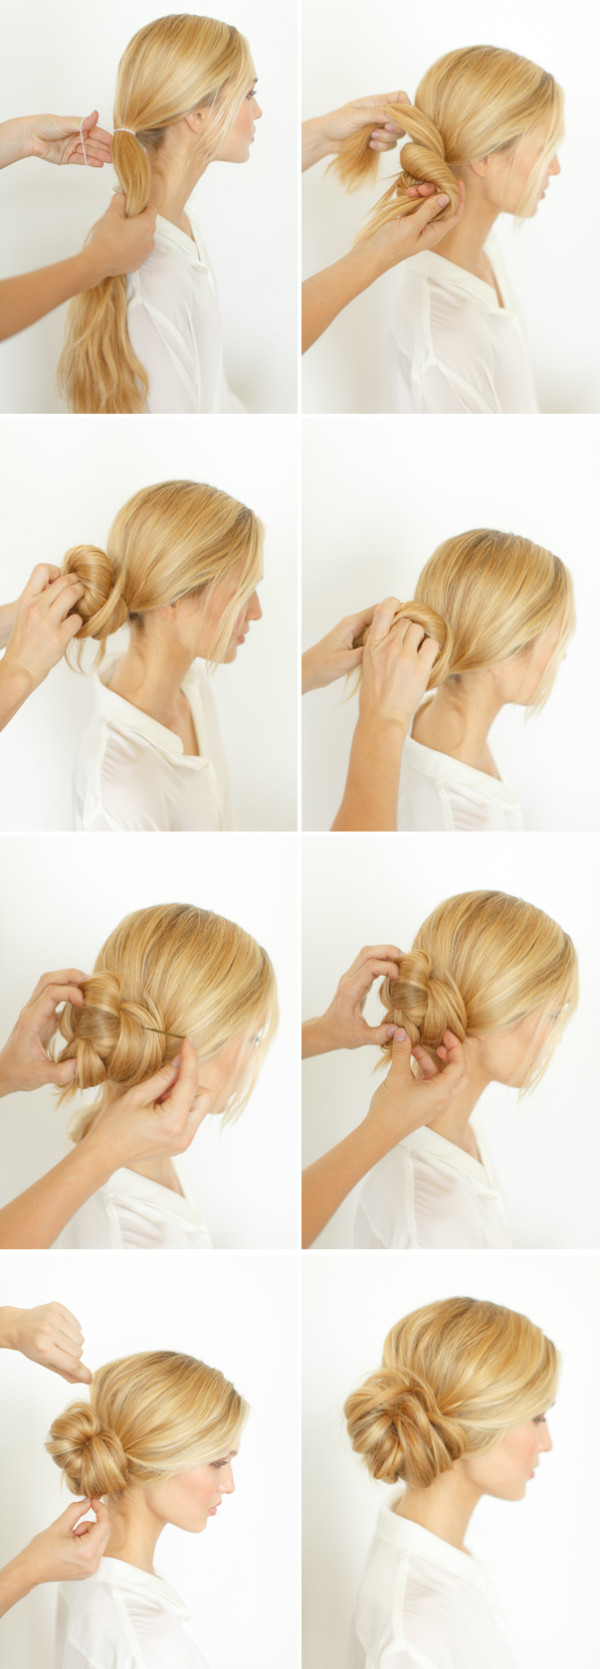 Best ideas about DIY Wedding Hairstyles . Save or Pin DIY Knotted Bun Wedding Hairstyle Now.